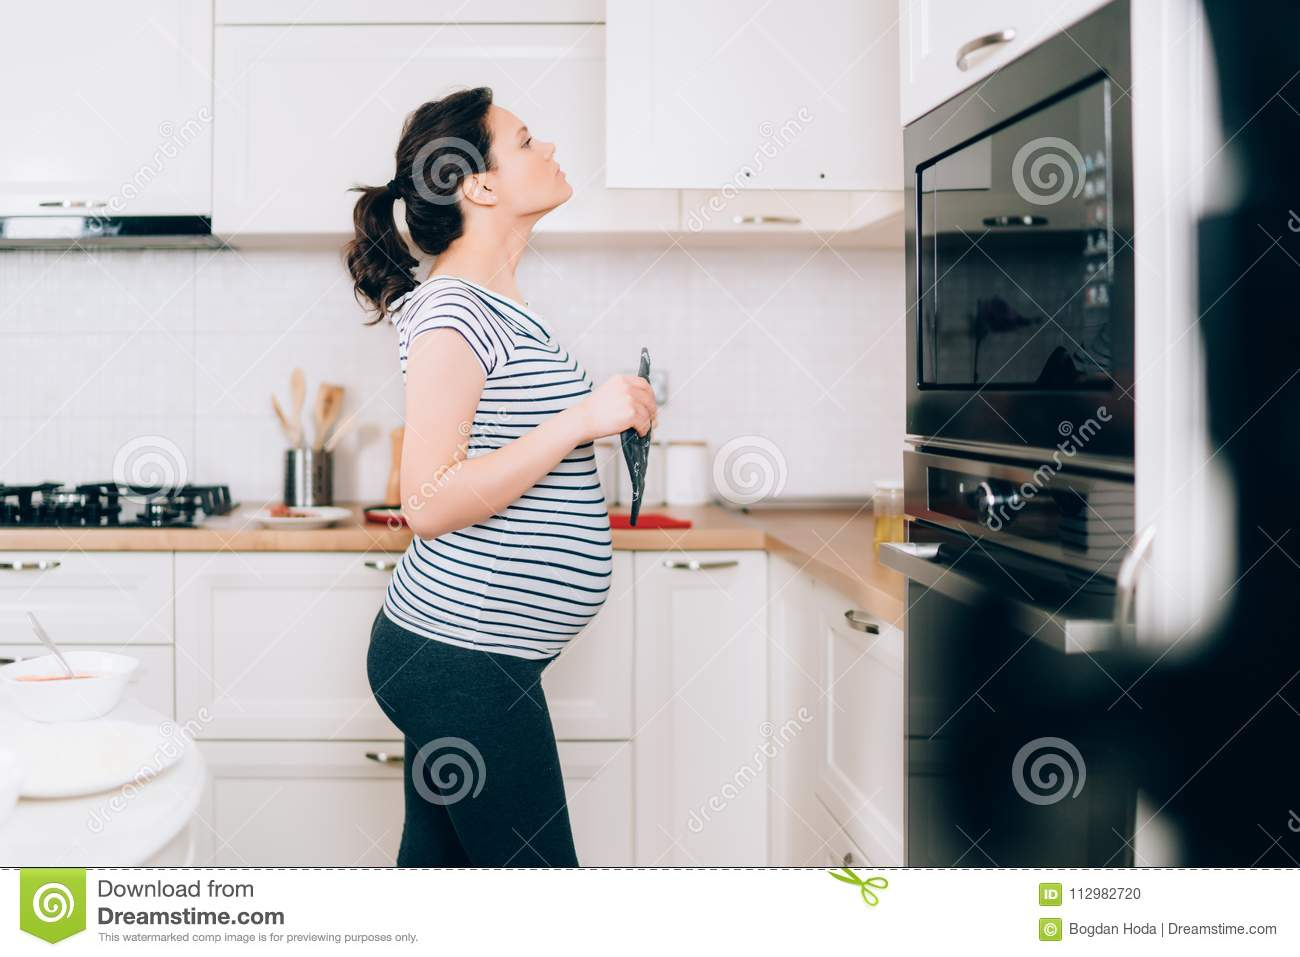 Young pregnant woman cooking in her kitchen standing and looking in cabinets near stove